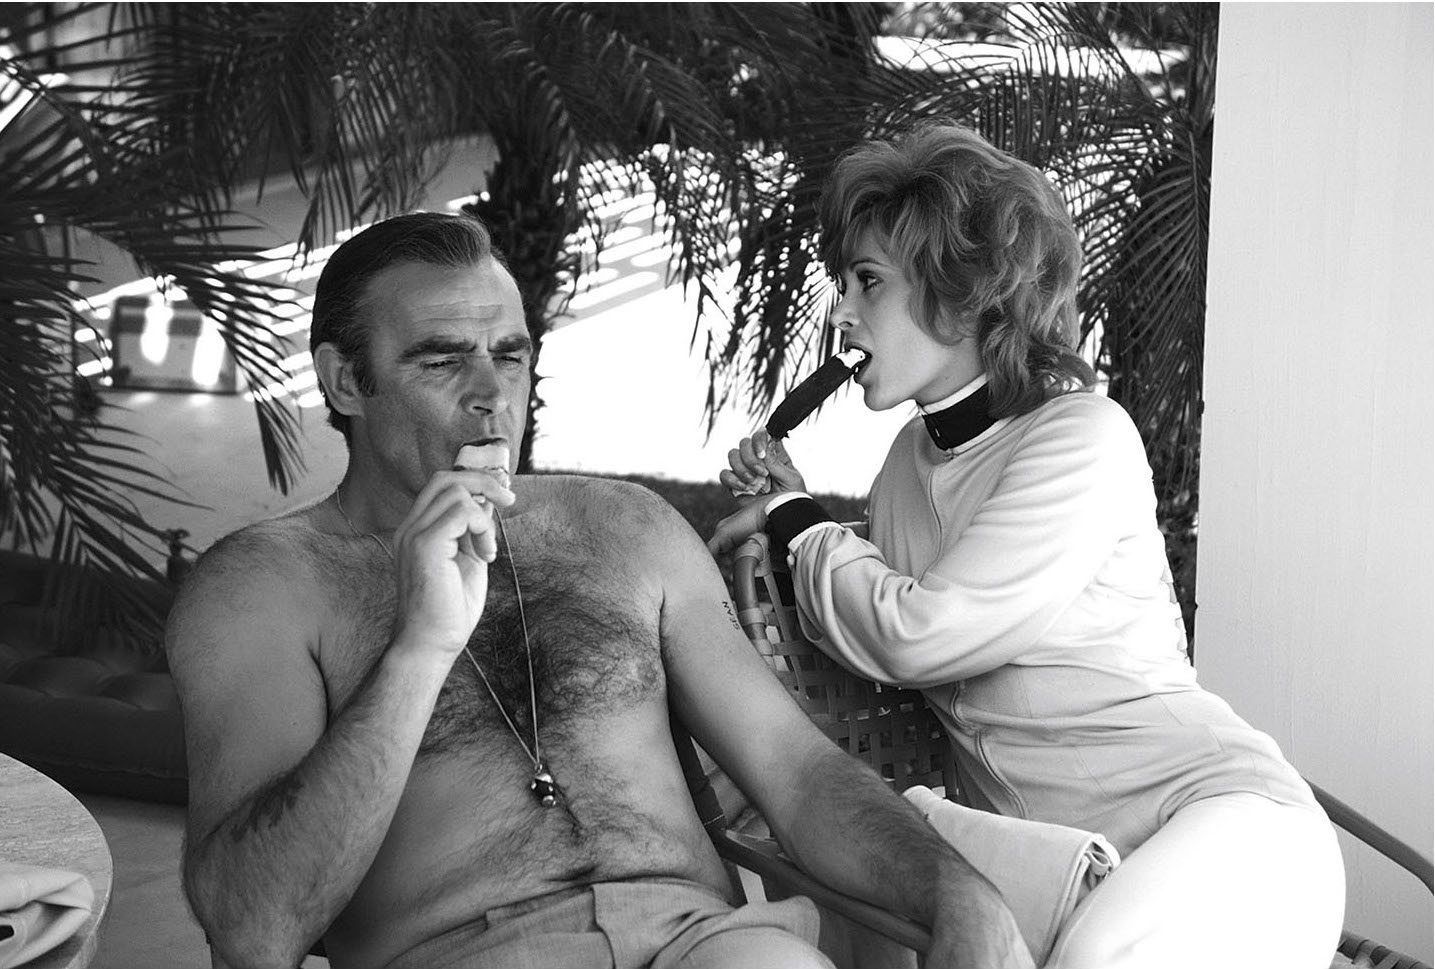 sean-connery-and-american-actress-jill-st-john-relax-on-the-set-of-the-james-bond-film-diamonds-are-forever-usa-may-1971-anwar-hussein